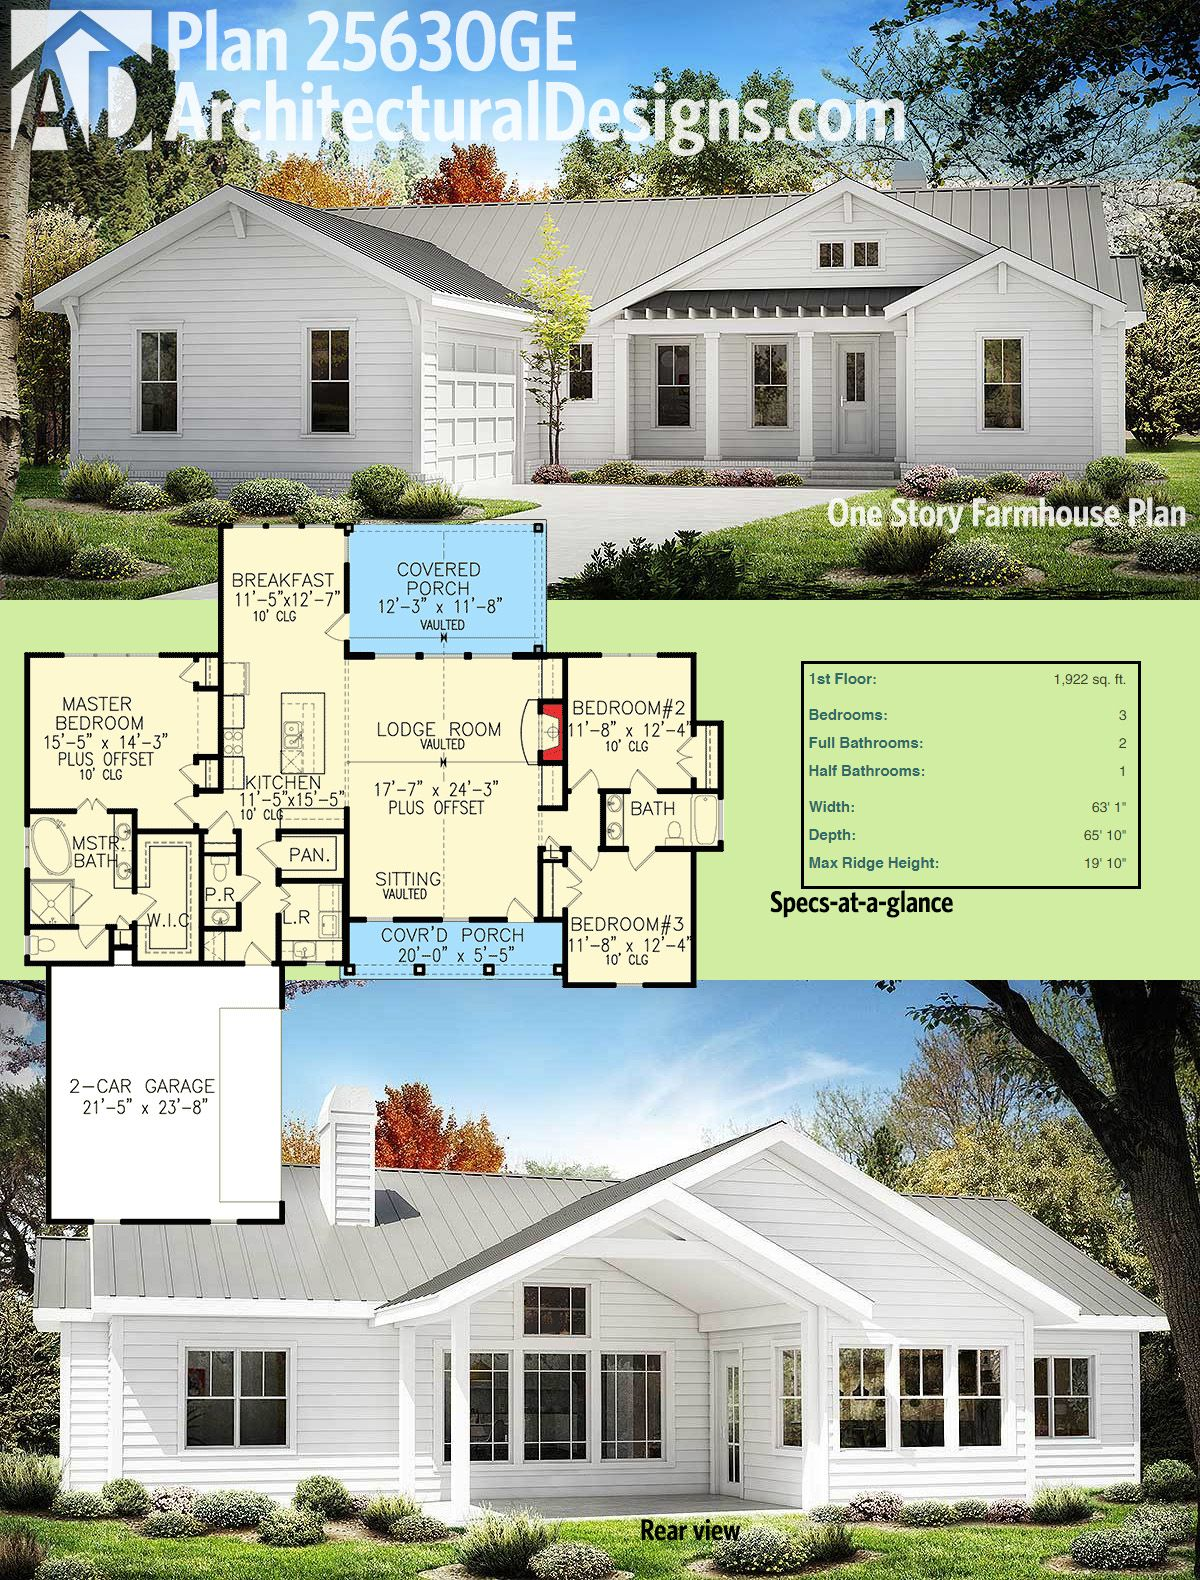 Plan GE e Story Farmhouse Plan